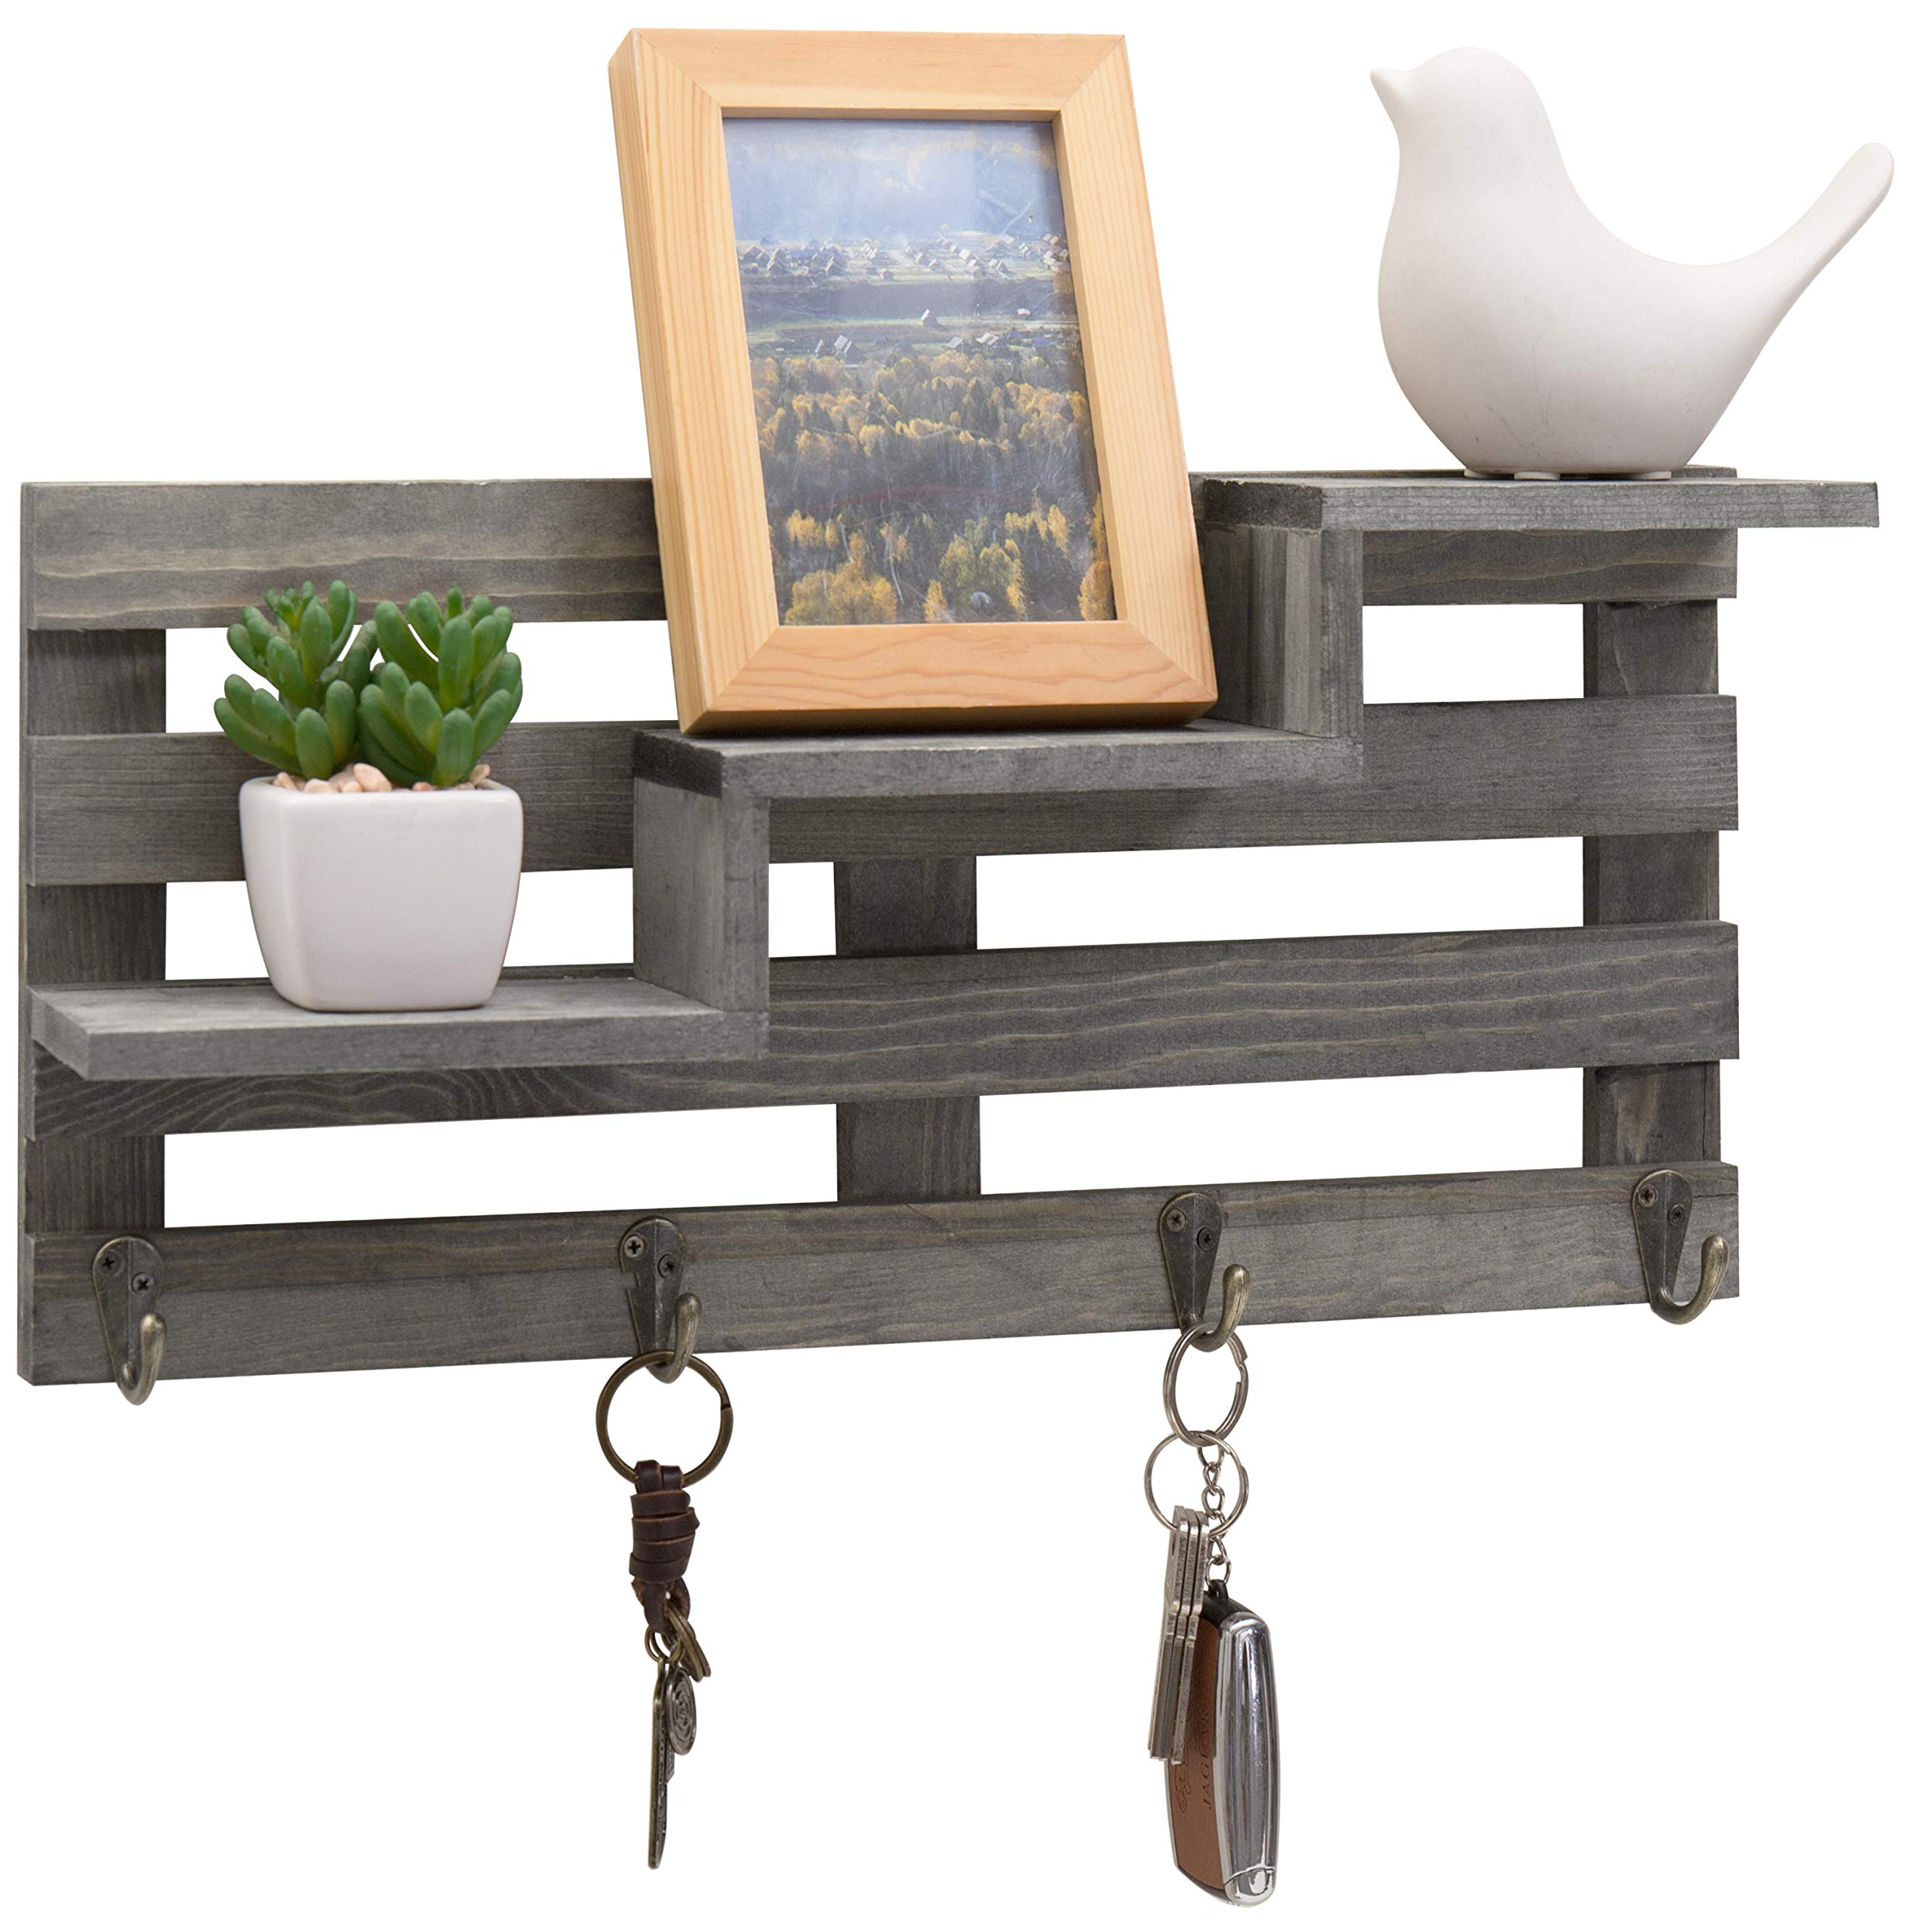 MyGift Vintage Gray Wood Wall-Mounted 3-Tiered Stair Display Shelf with 4 Key Hooks by MyGift